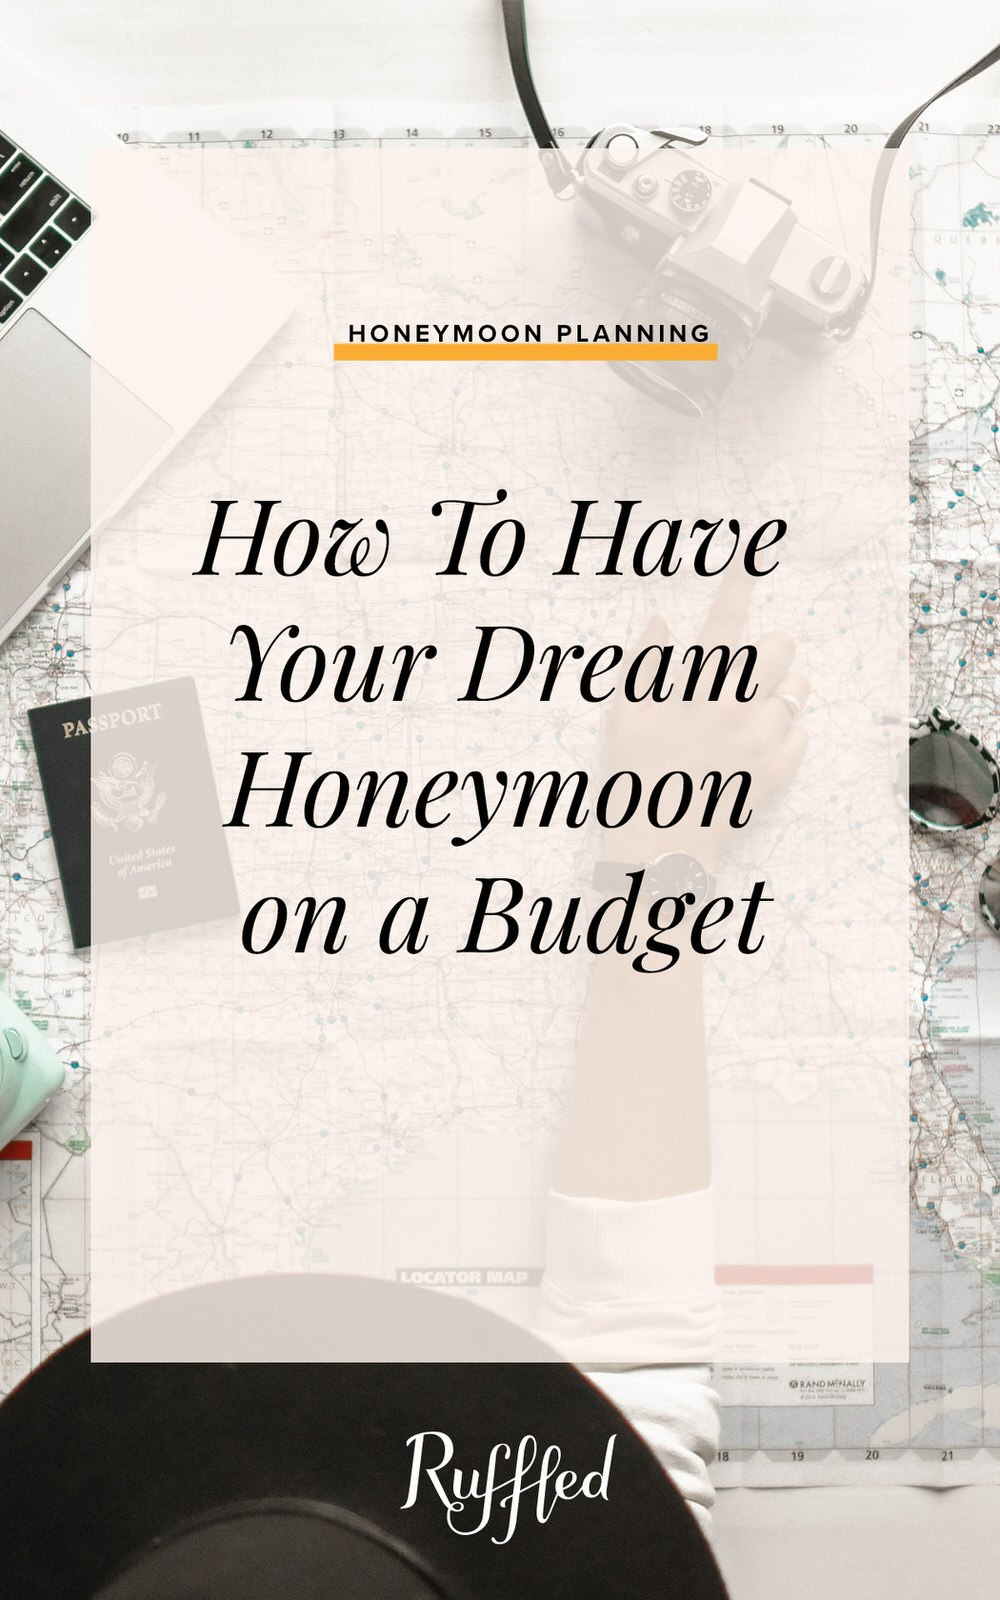 How to Have Your Dream Honeymoon on a Budget